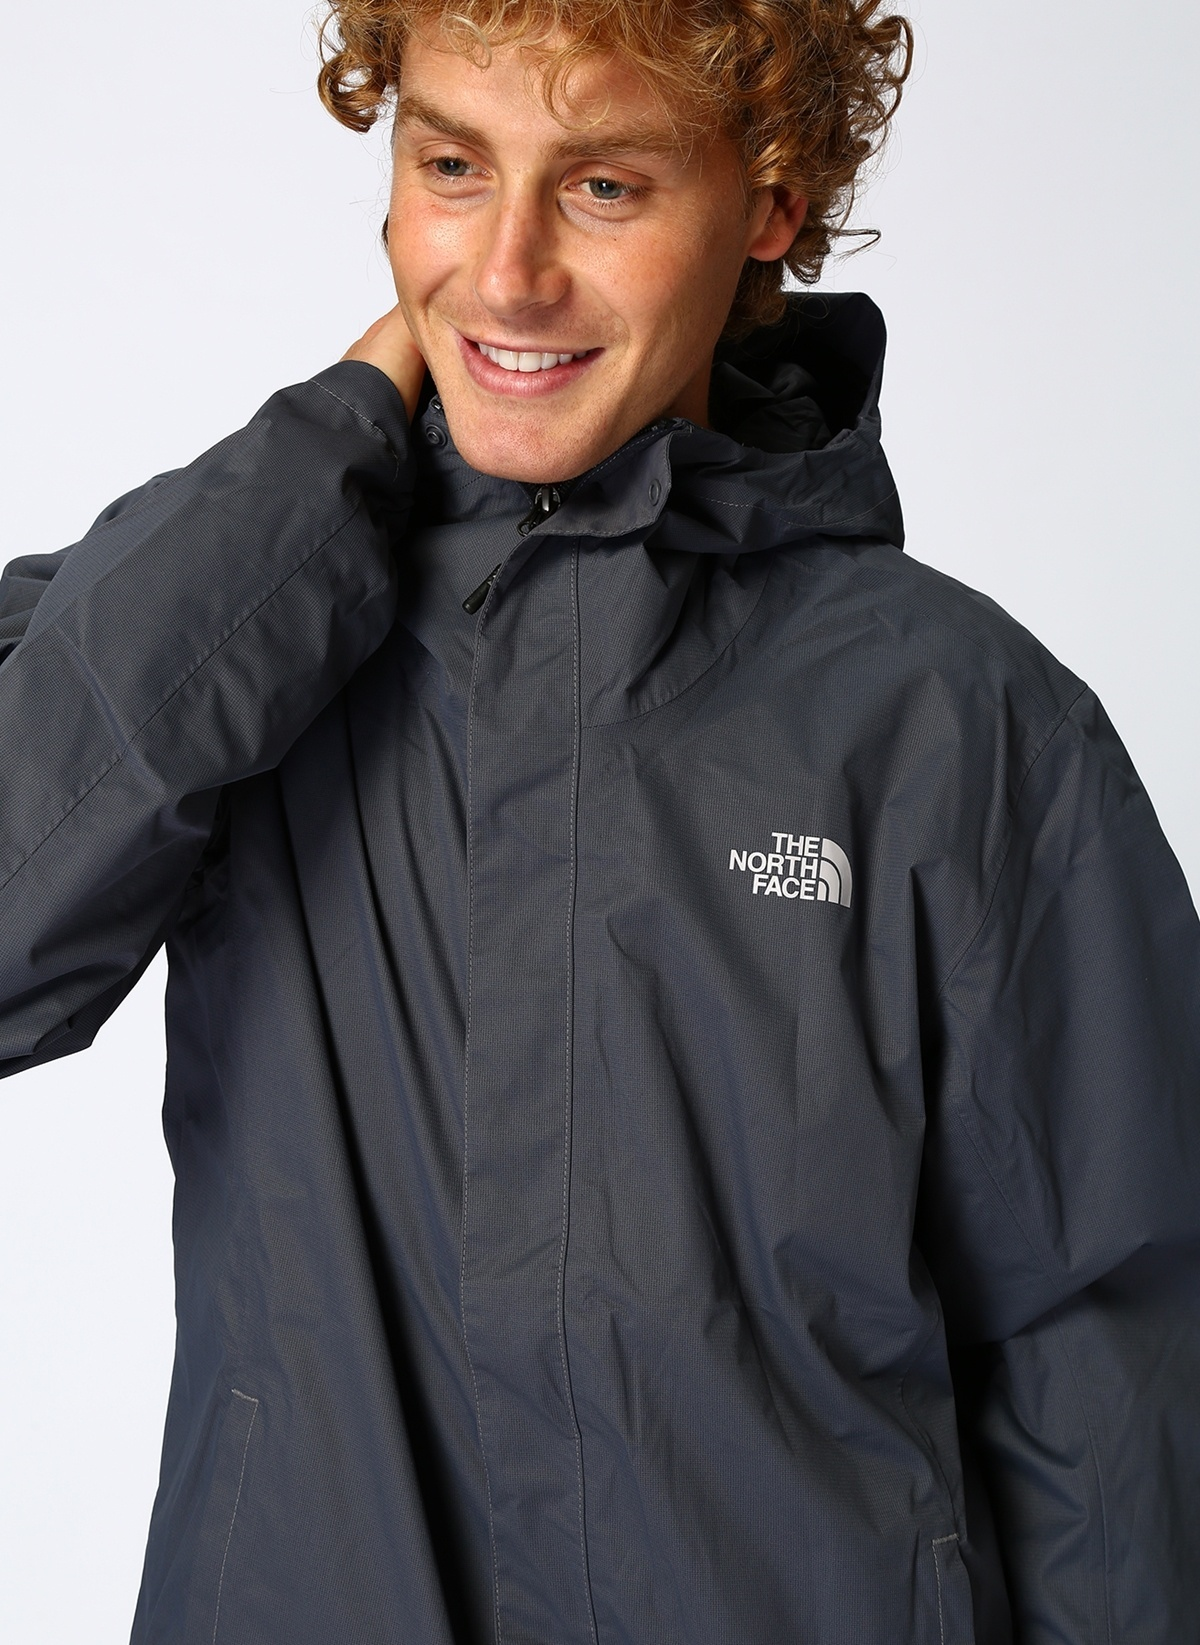 The North Face Outdoor Mont T9381x174-the-north-face-ceket – 849.0 TL